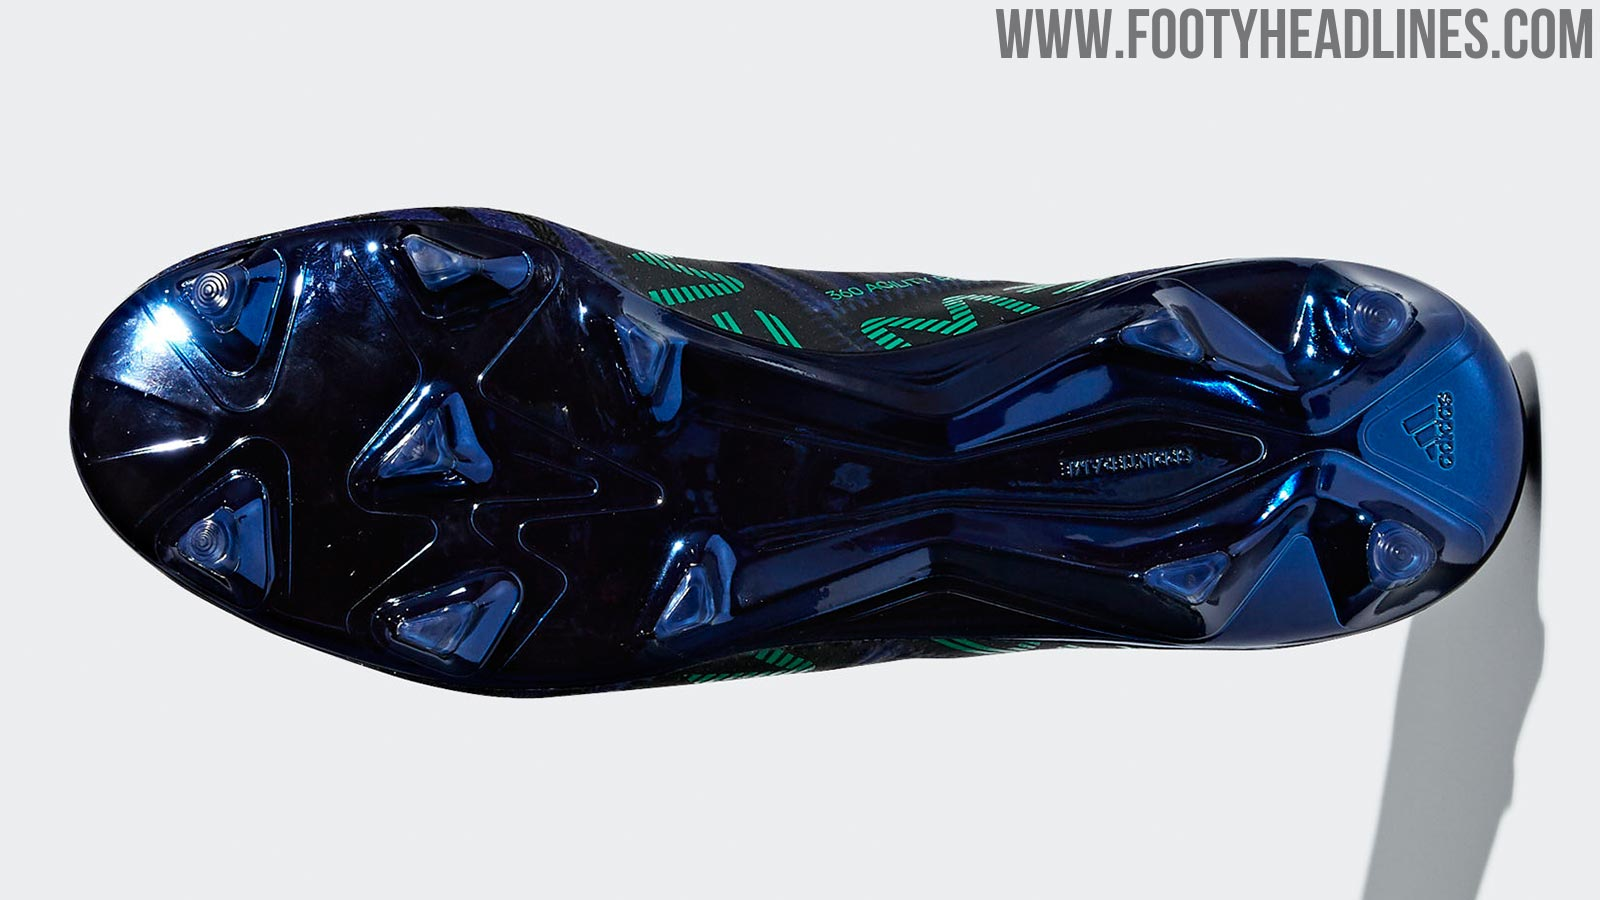 purchase cheap 6af4a eaa5d ... the Adidas Nemeziz Messi Deadly Strike 2018 boots, set to be worn by  Messi for the latter stages of the 17-18 campaign, combine a dark blue   navy ...